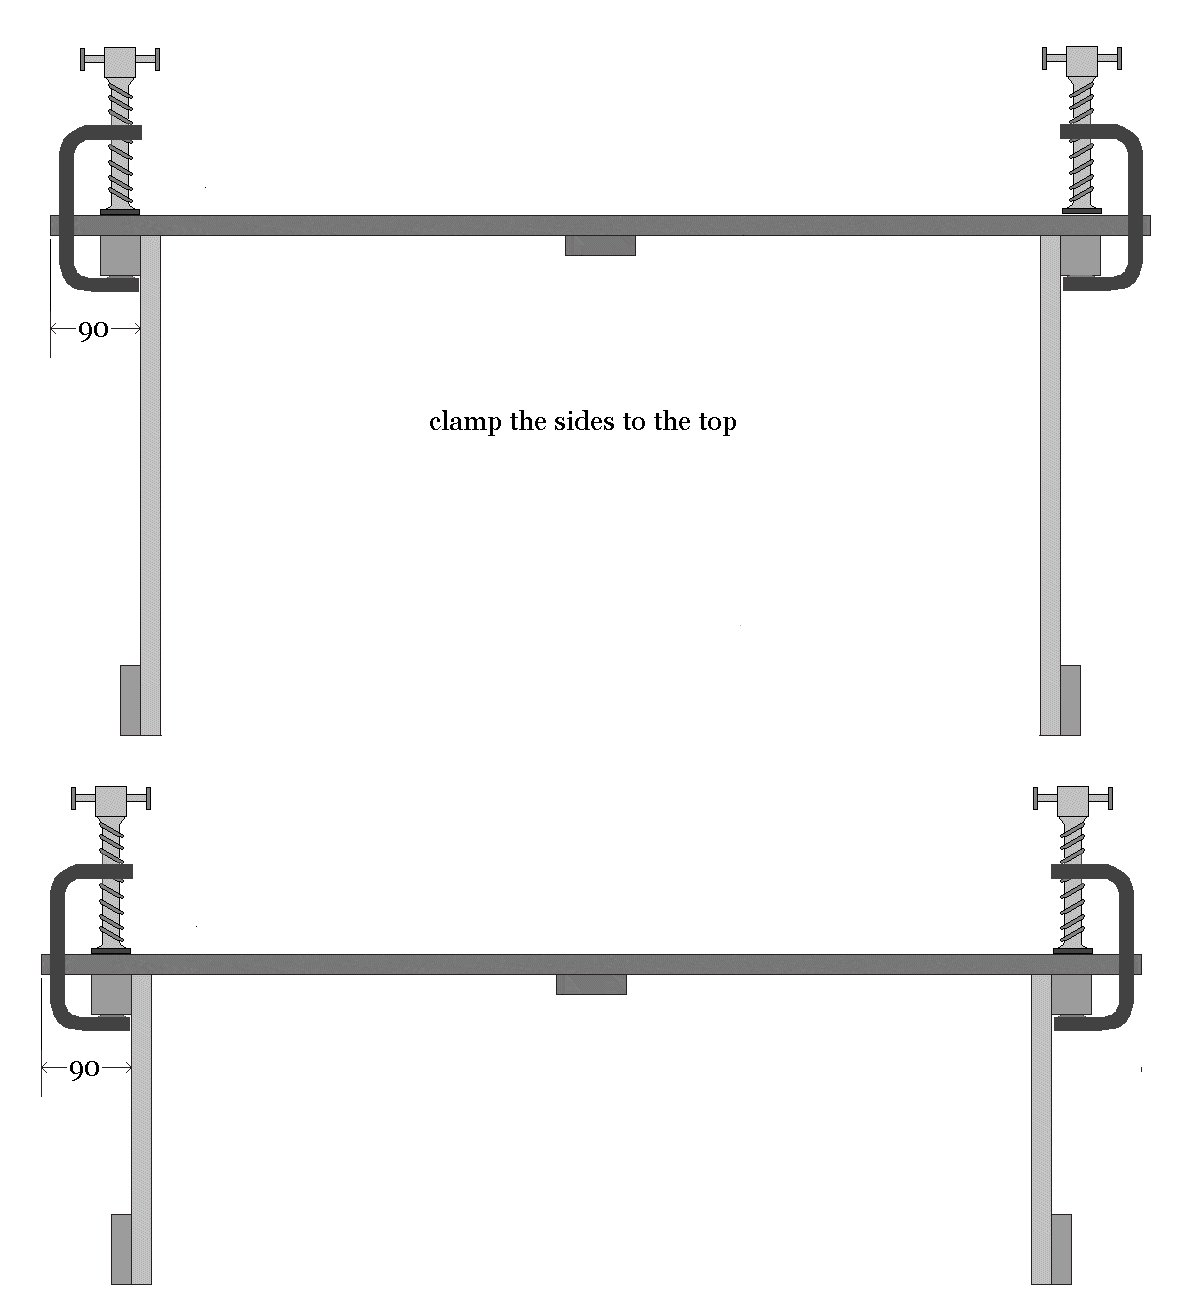 Kids Table and Bench : Clamp the sides to the Tops - Metric version